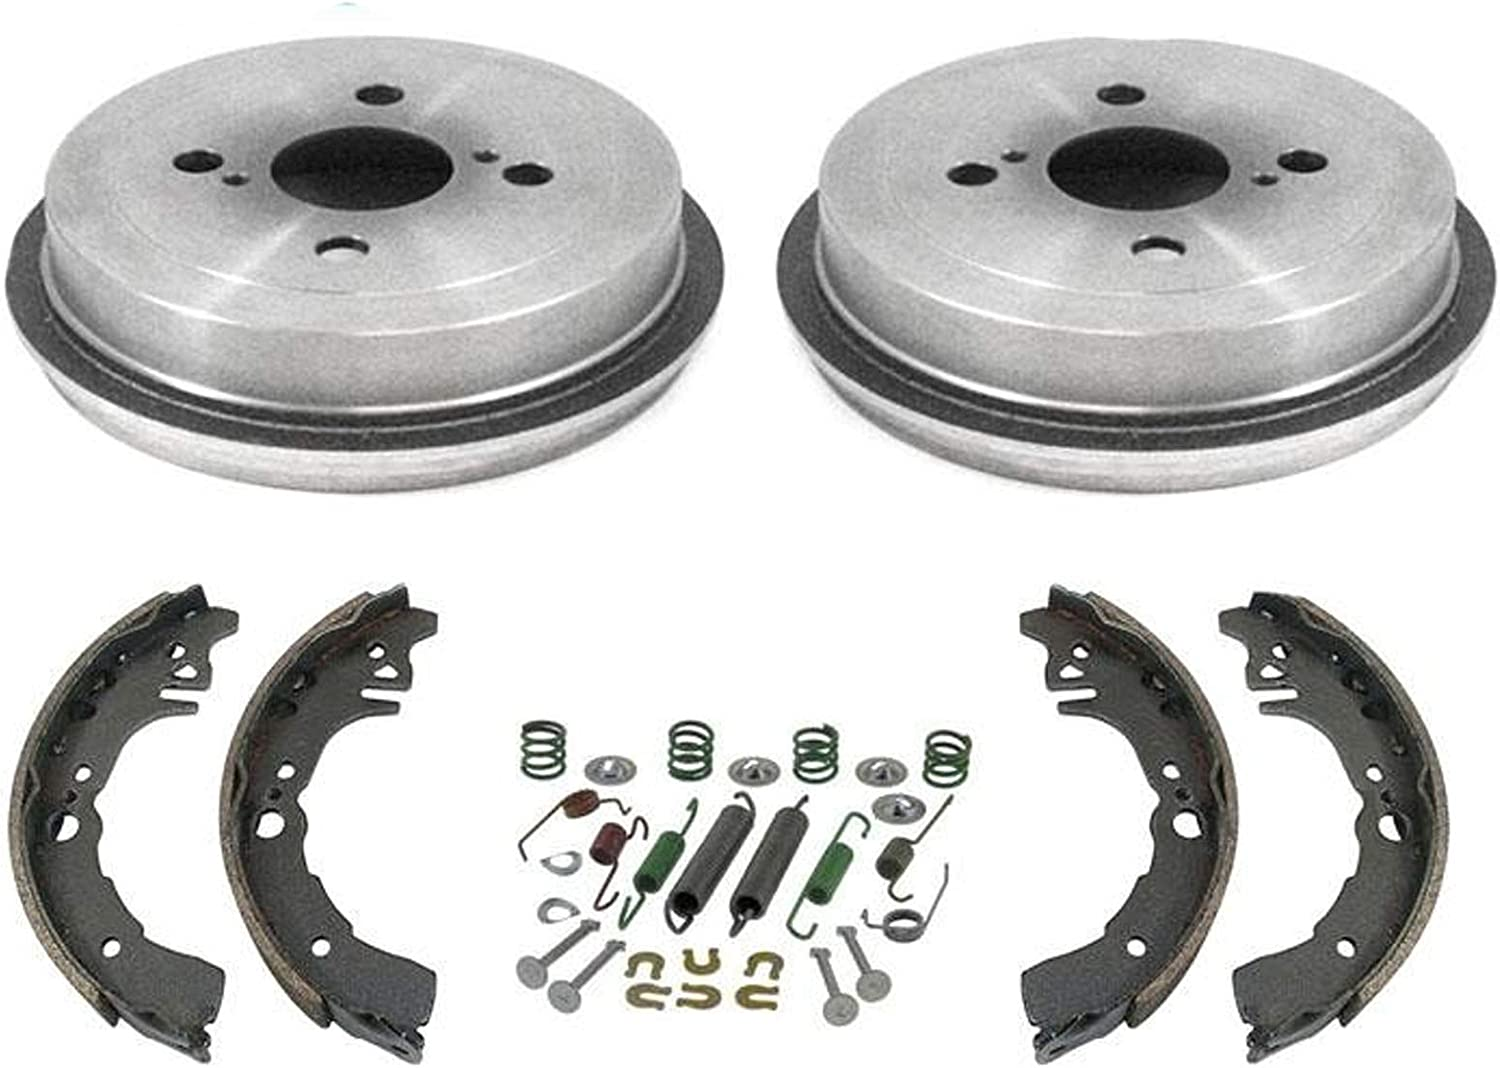 2002 For Toyota Echo Rear Drum Brake Shoes Set Both Left and Right with 2 Years Manufacturer Warranty